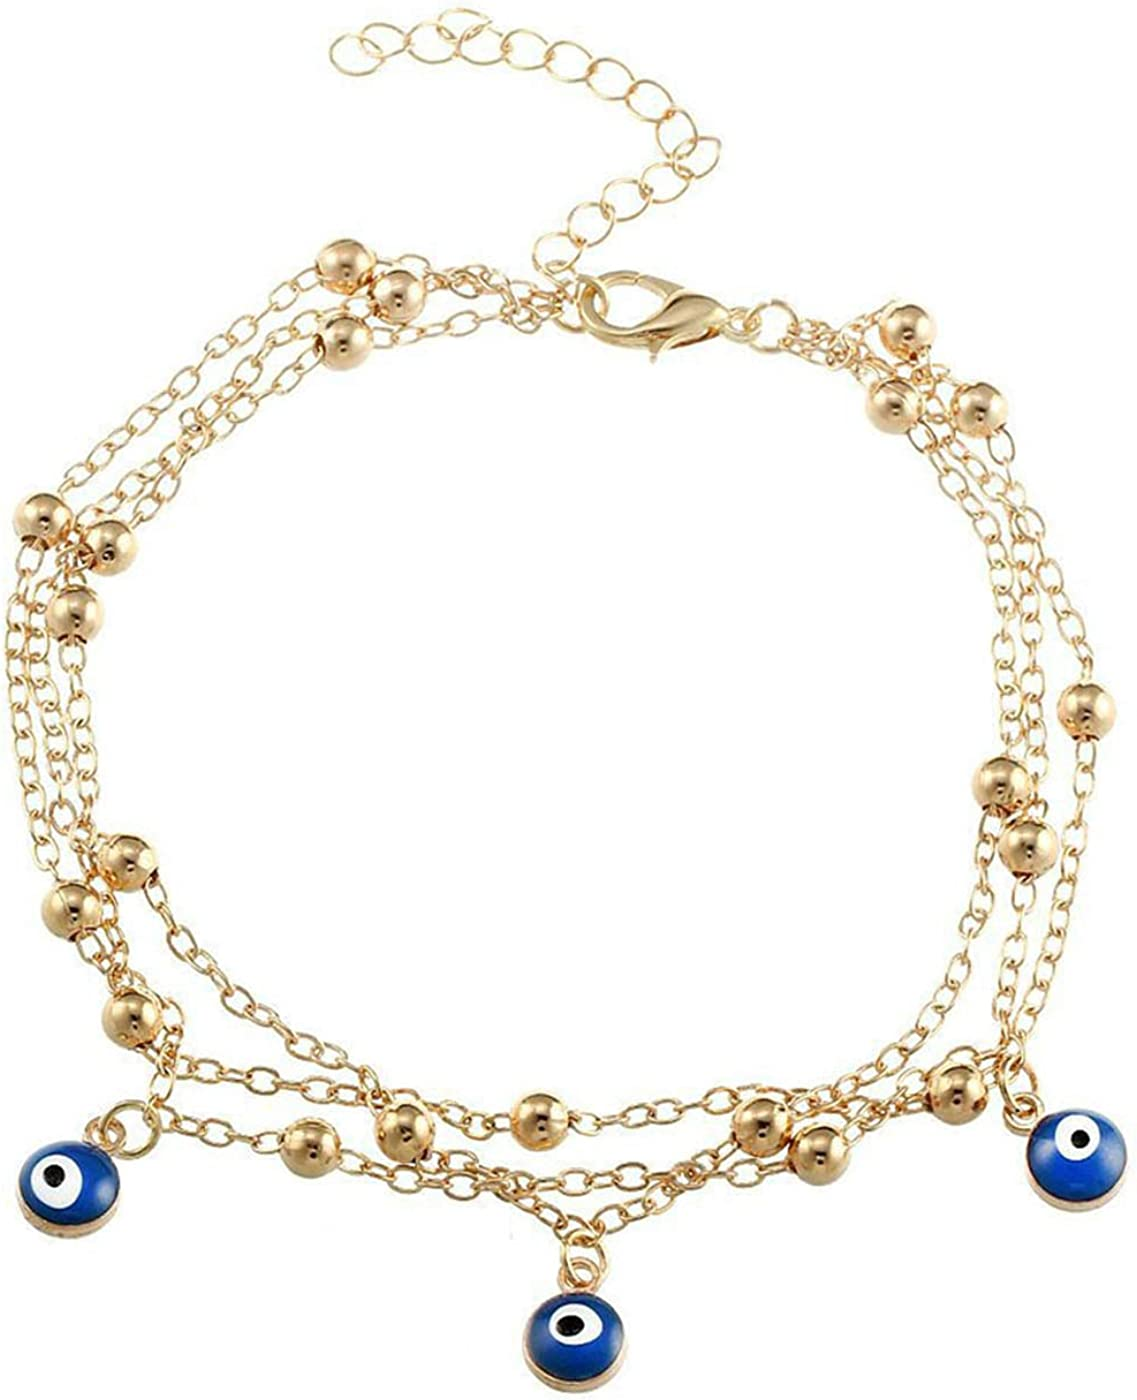 Hermashy Beaded Ankle Bracelets for Women Evil Eye Gold Boho Anklets Foot Jewelry Barefoot Sandals Layered Link Chain Beach Anklet Bracelet Jewelry for Girls(Gold 3)